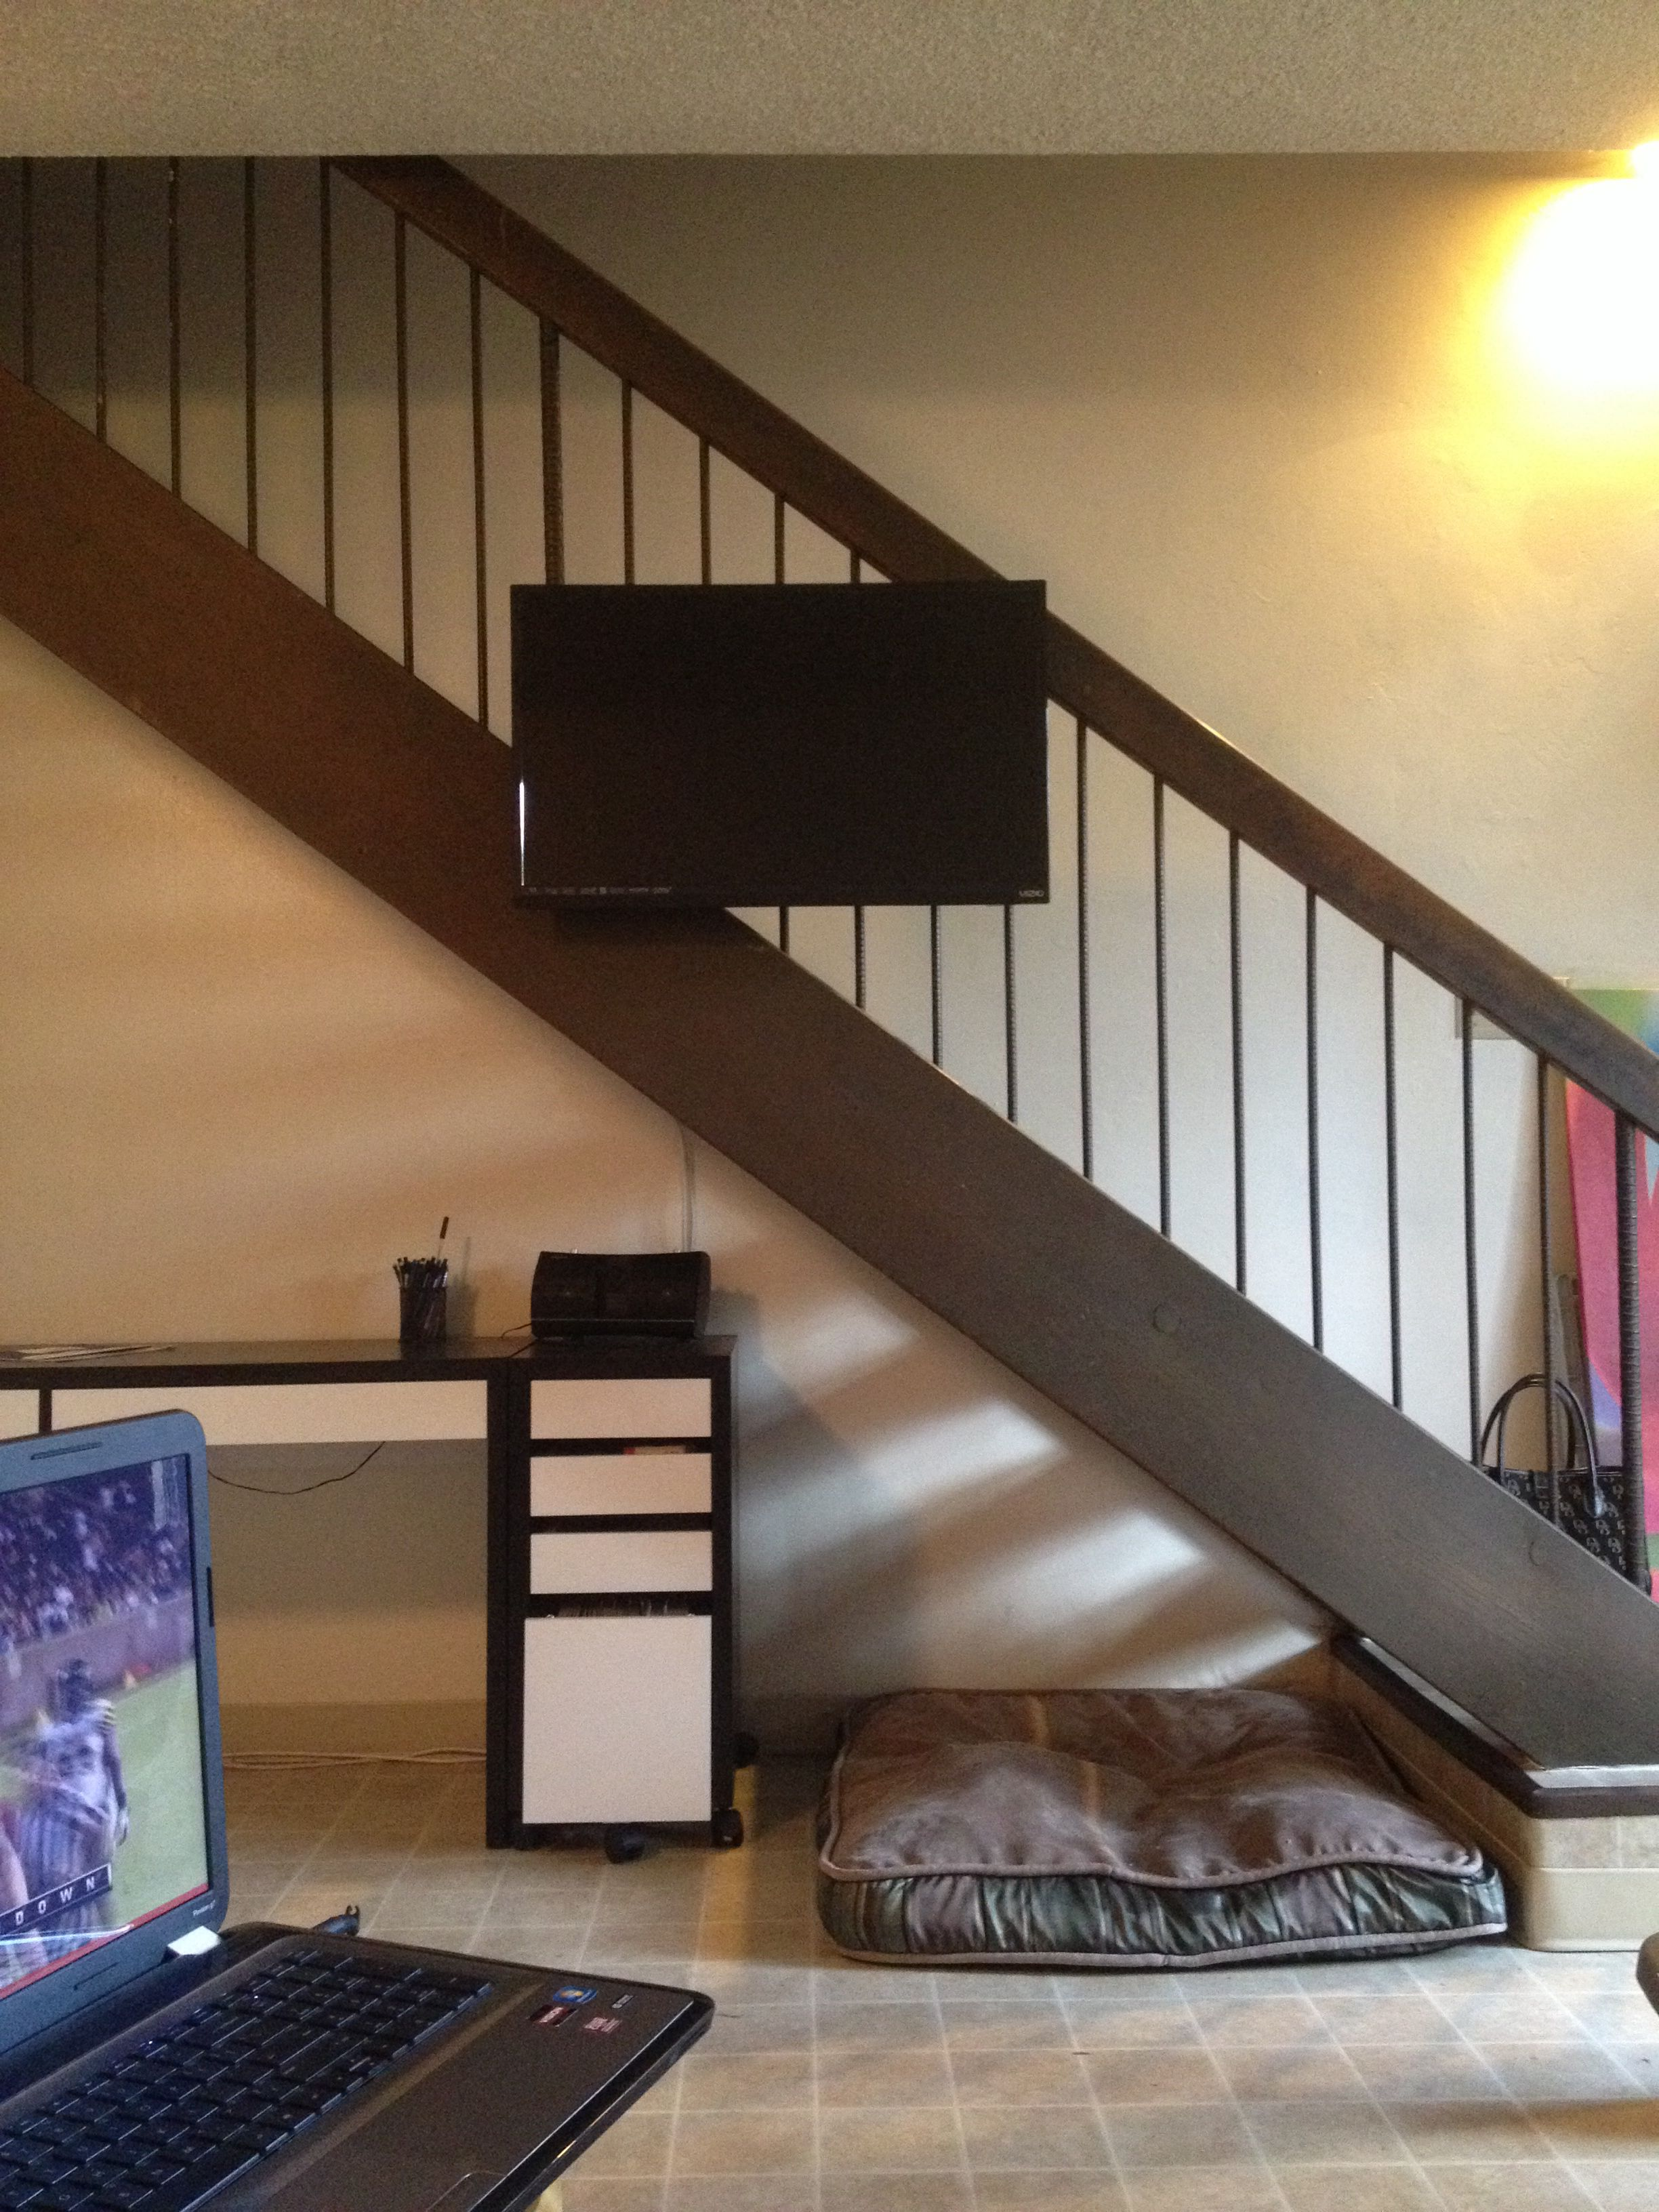 Small apartment? No problem. Mount your TV to the stairs ...